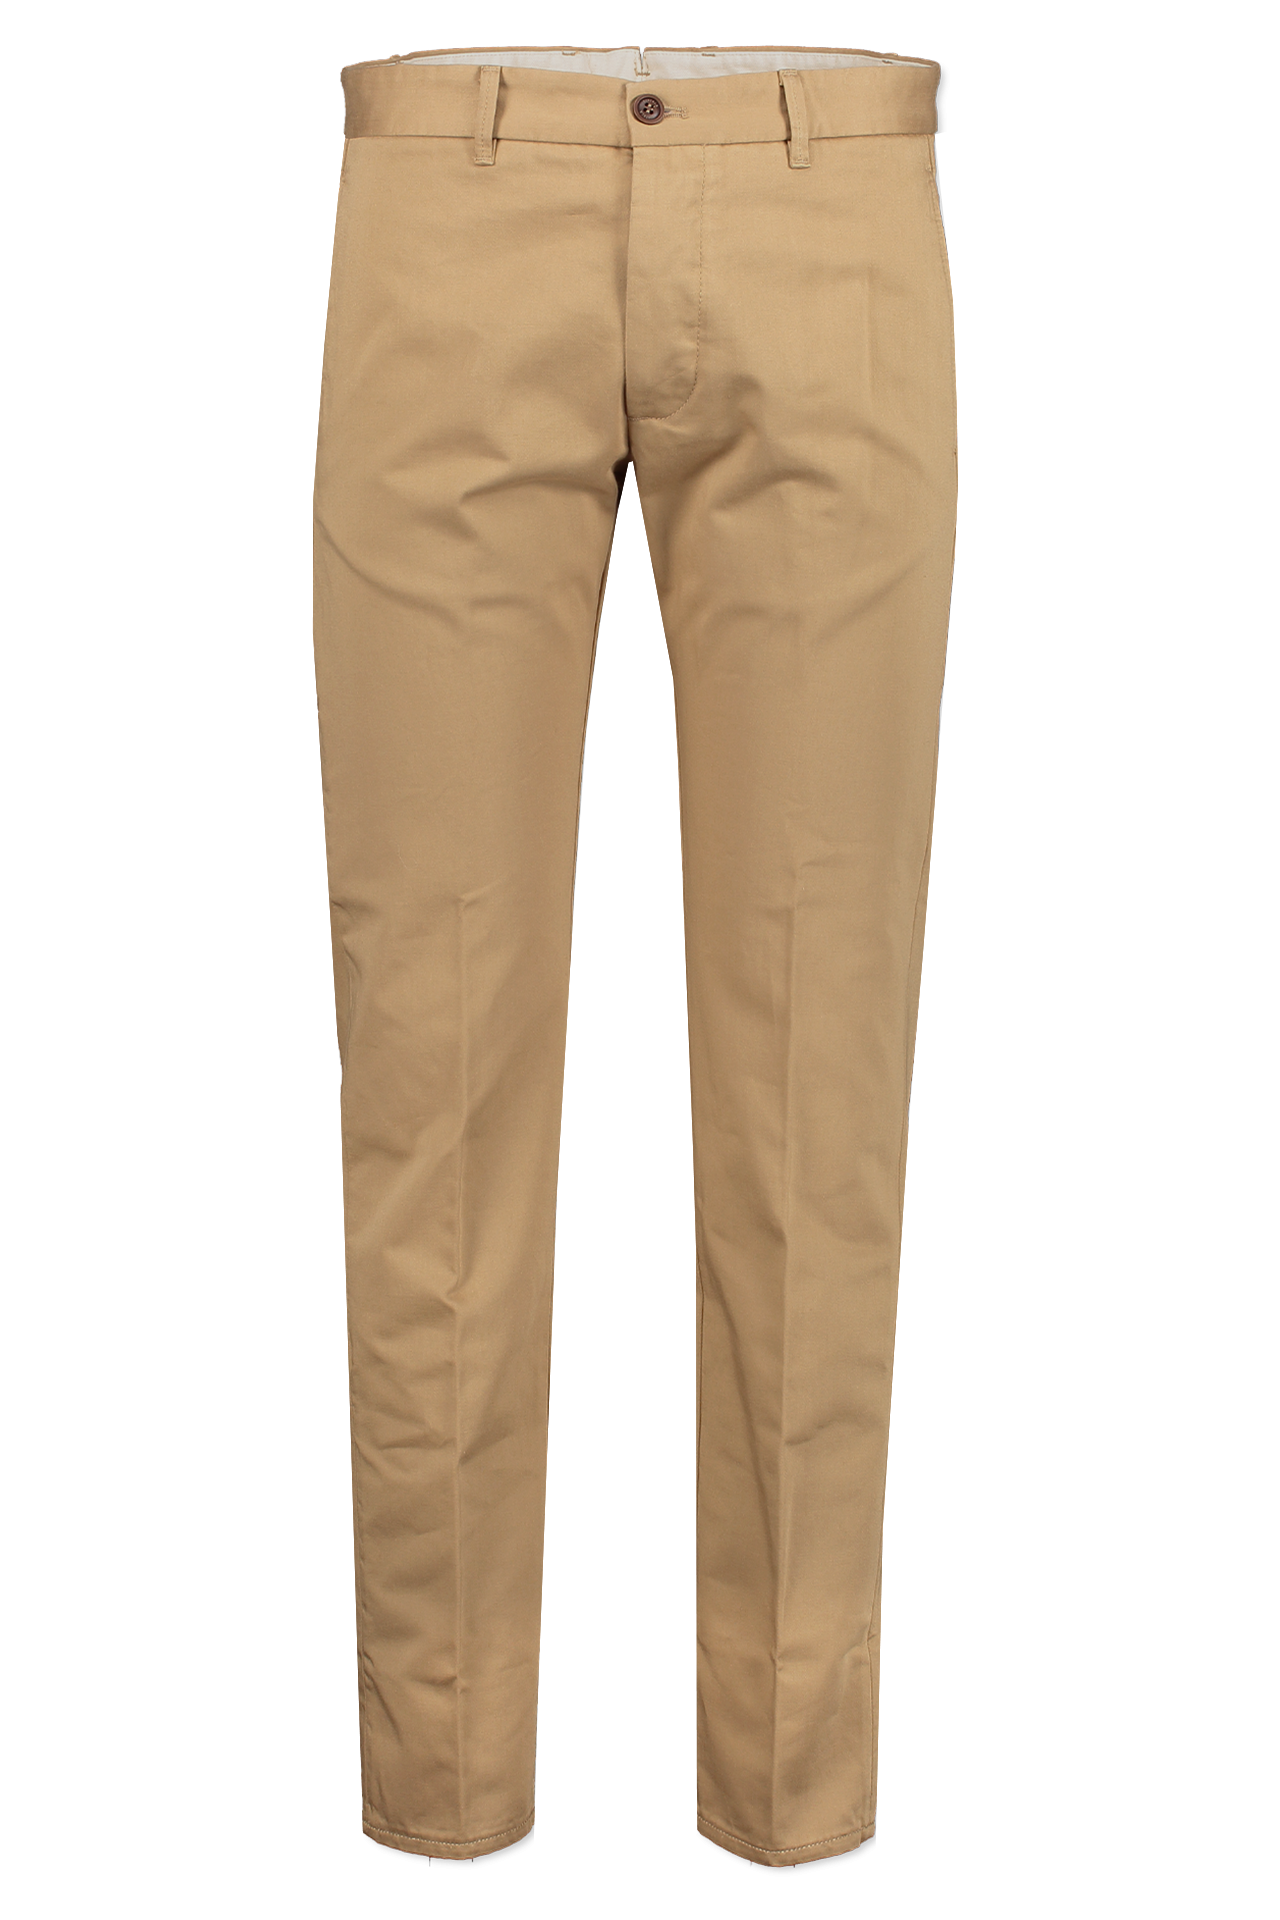 Front view image of Fortela Chino Pant Camel